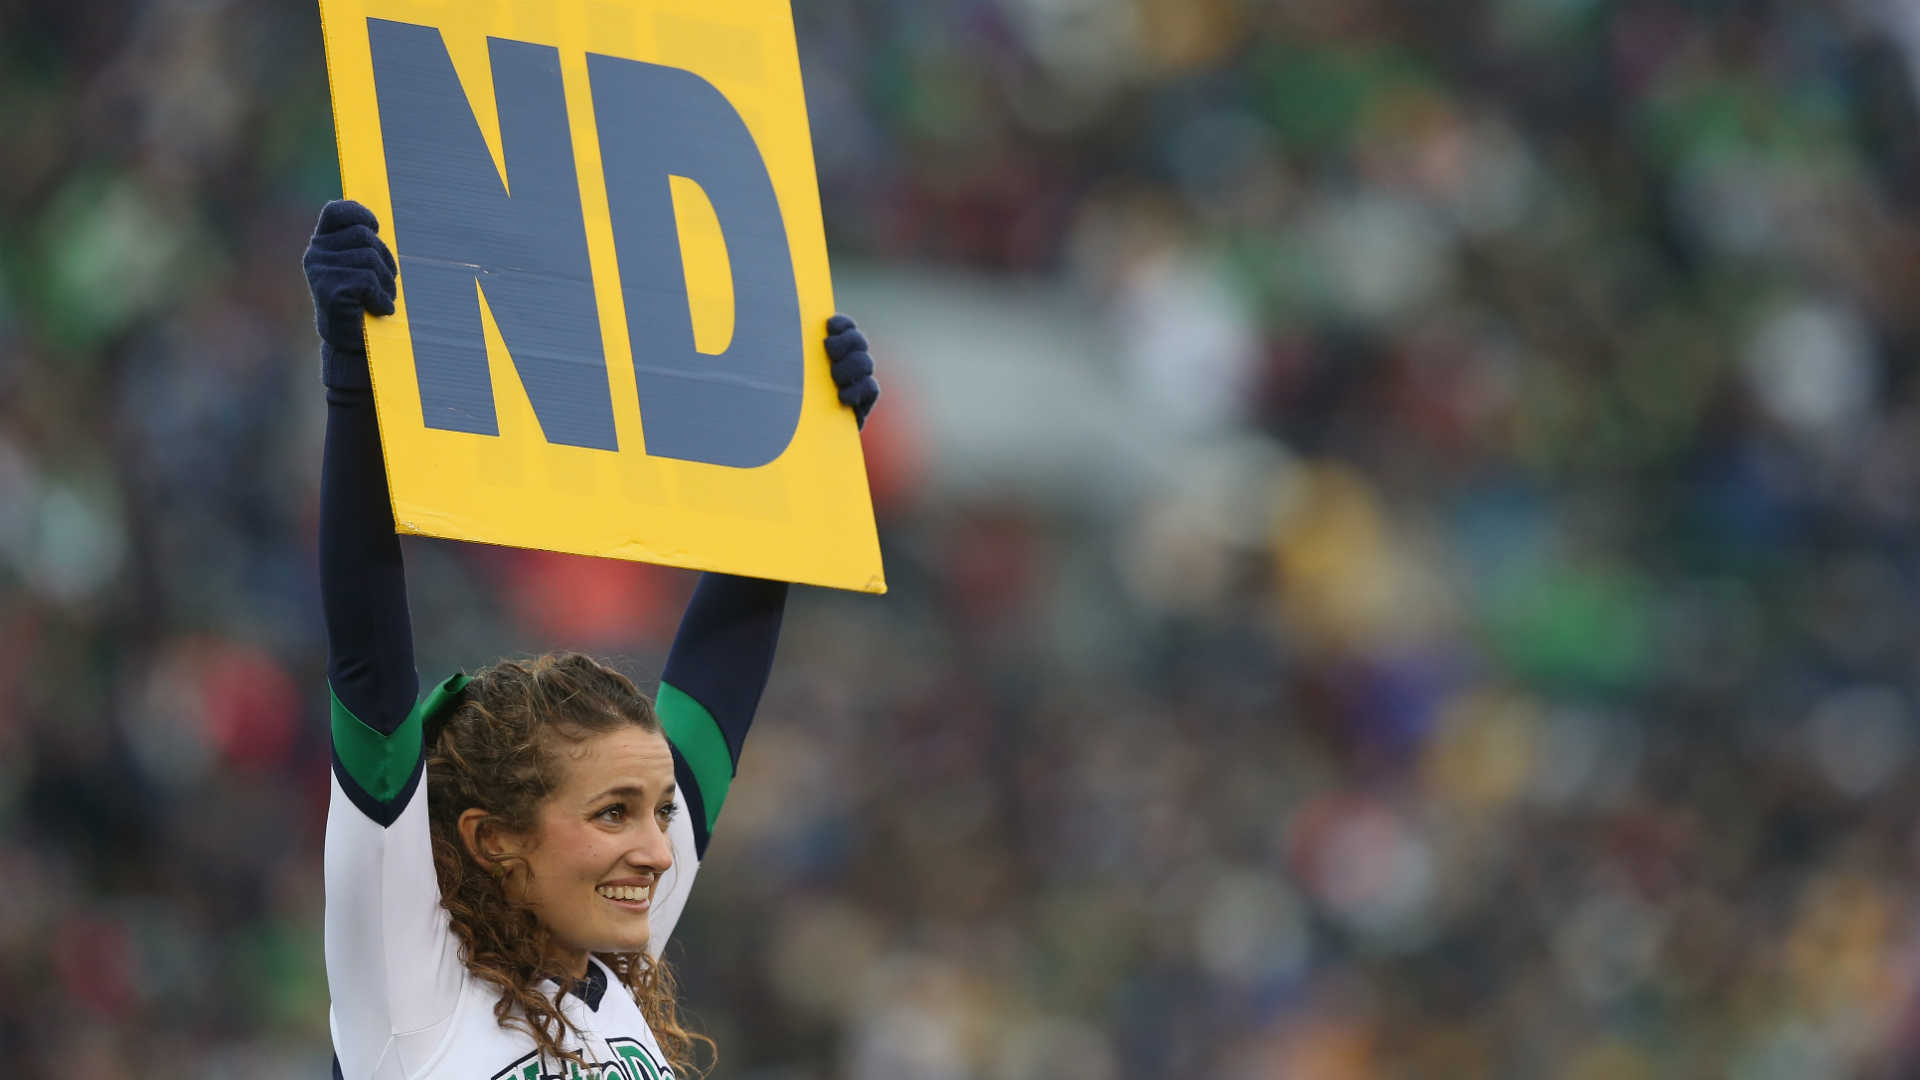 Notre Dame can remain independent, playoff chief says